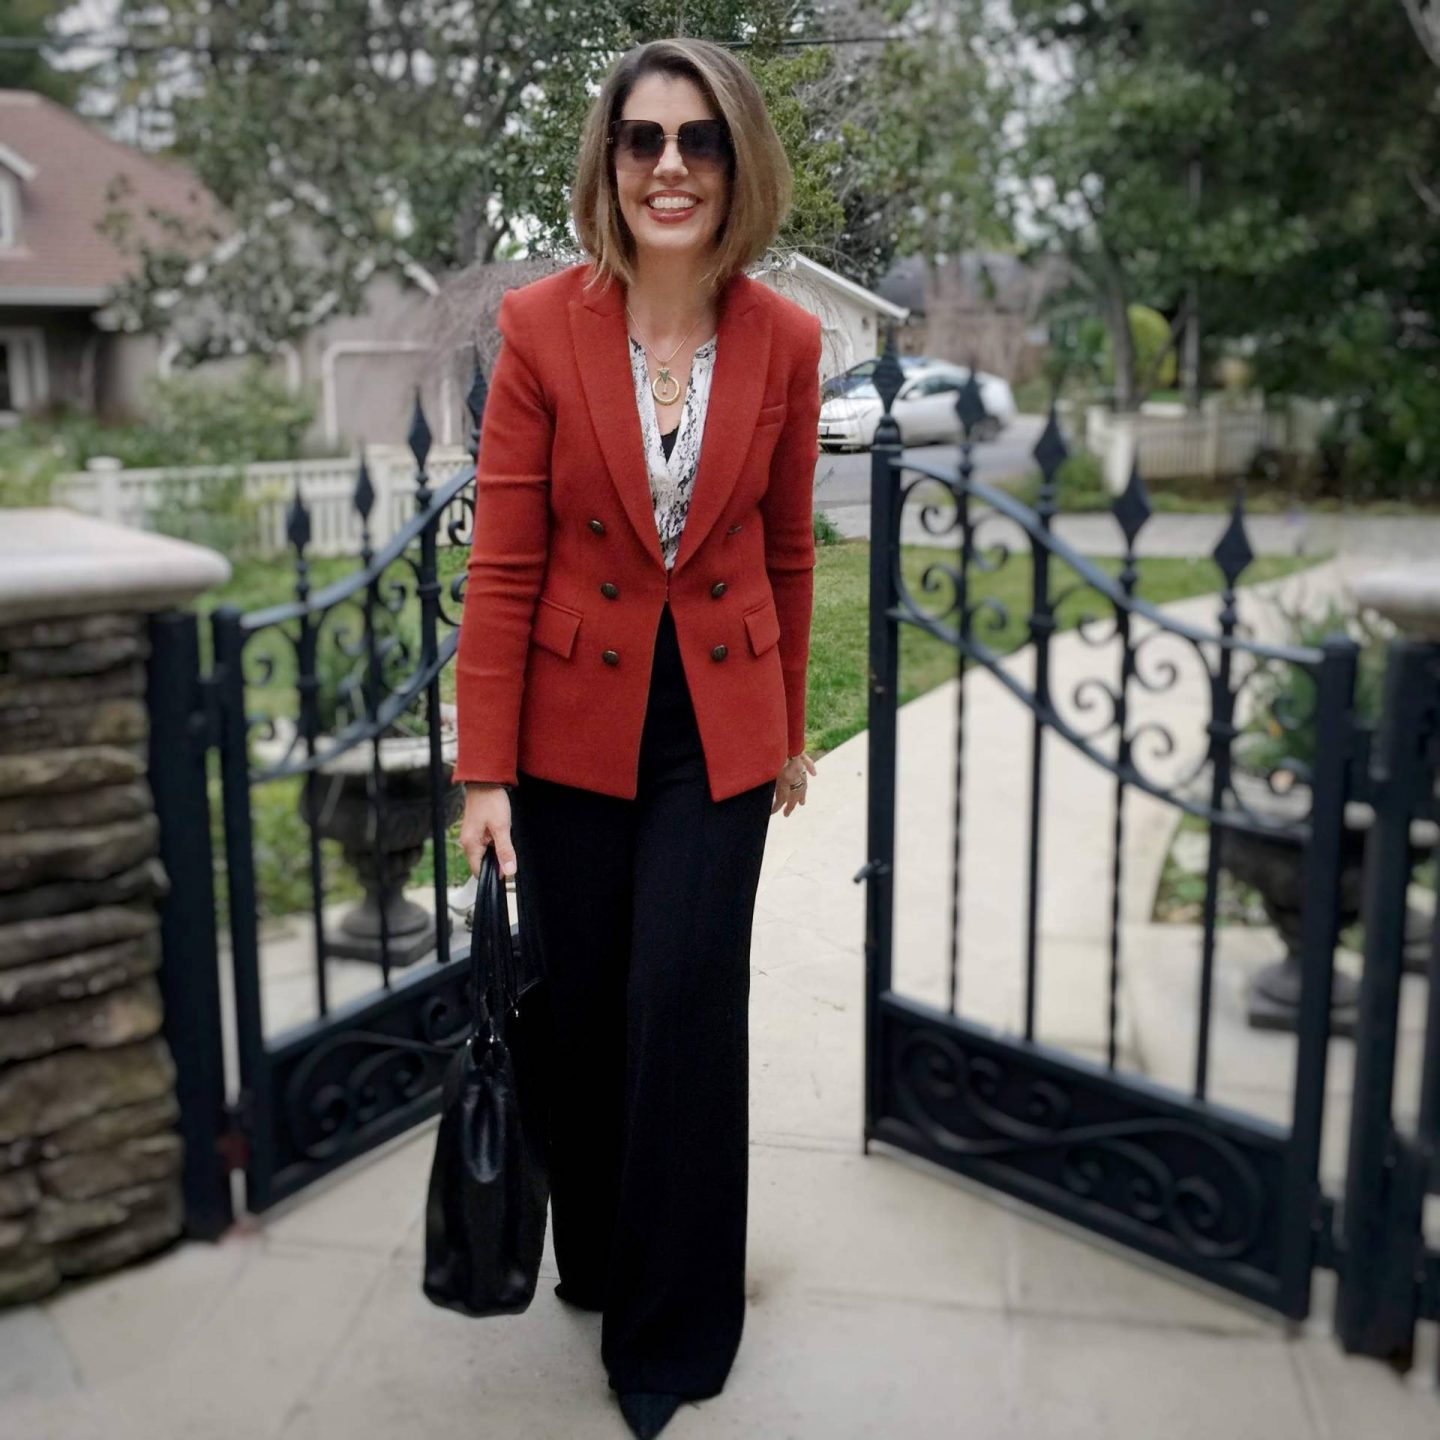 Red for Valentine's Day Stylish Monday link up, Suzanne Bell